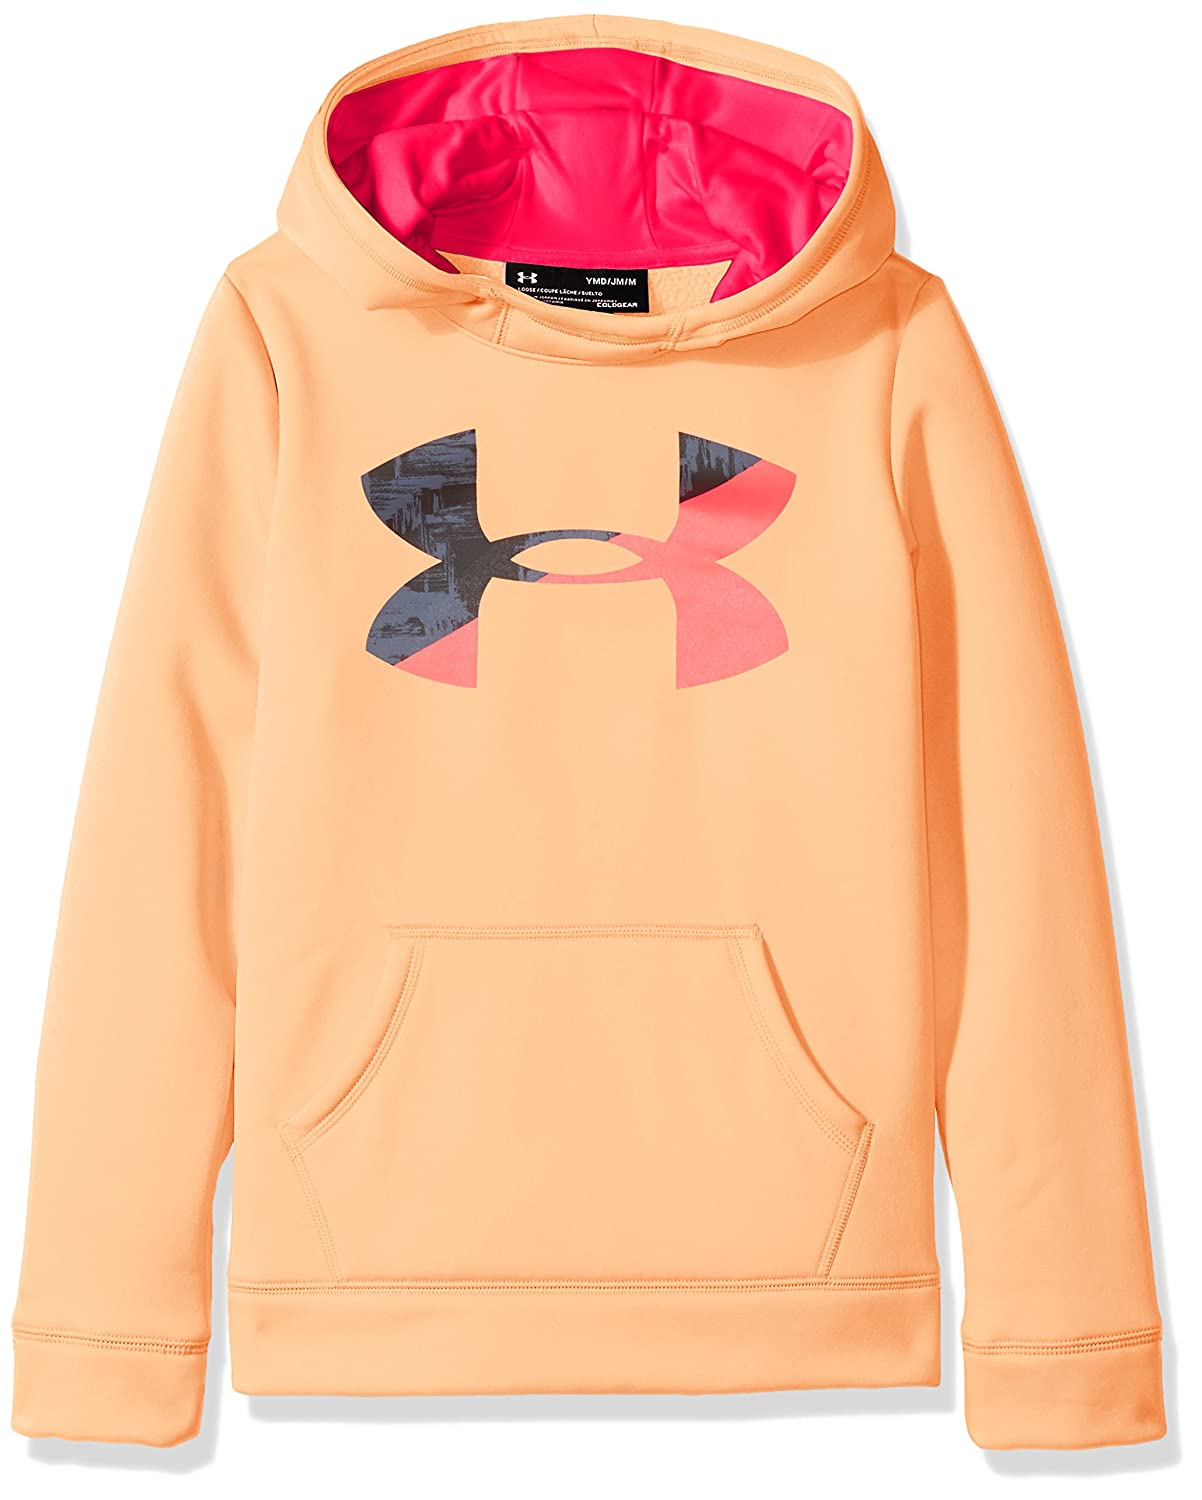 Under Armour Girls' Armour Fleece Big Logo Hoodie Under Armour Apparel 1298860